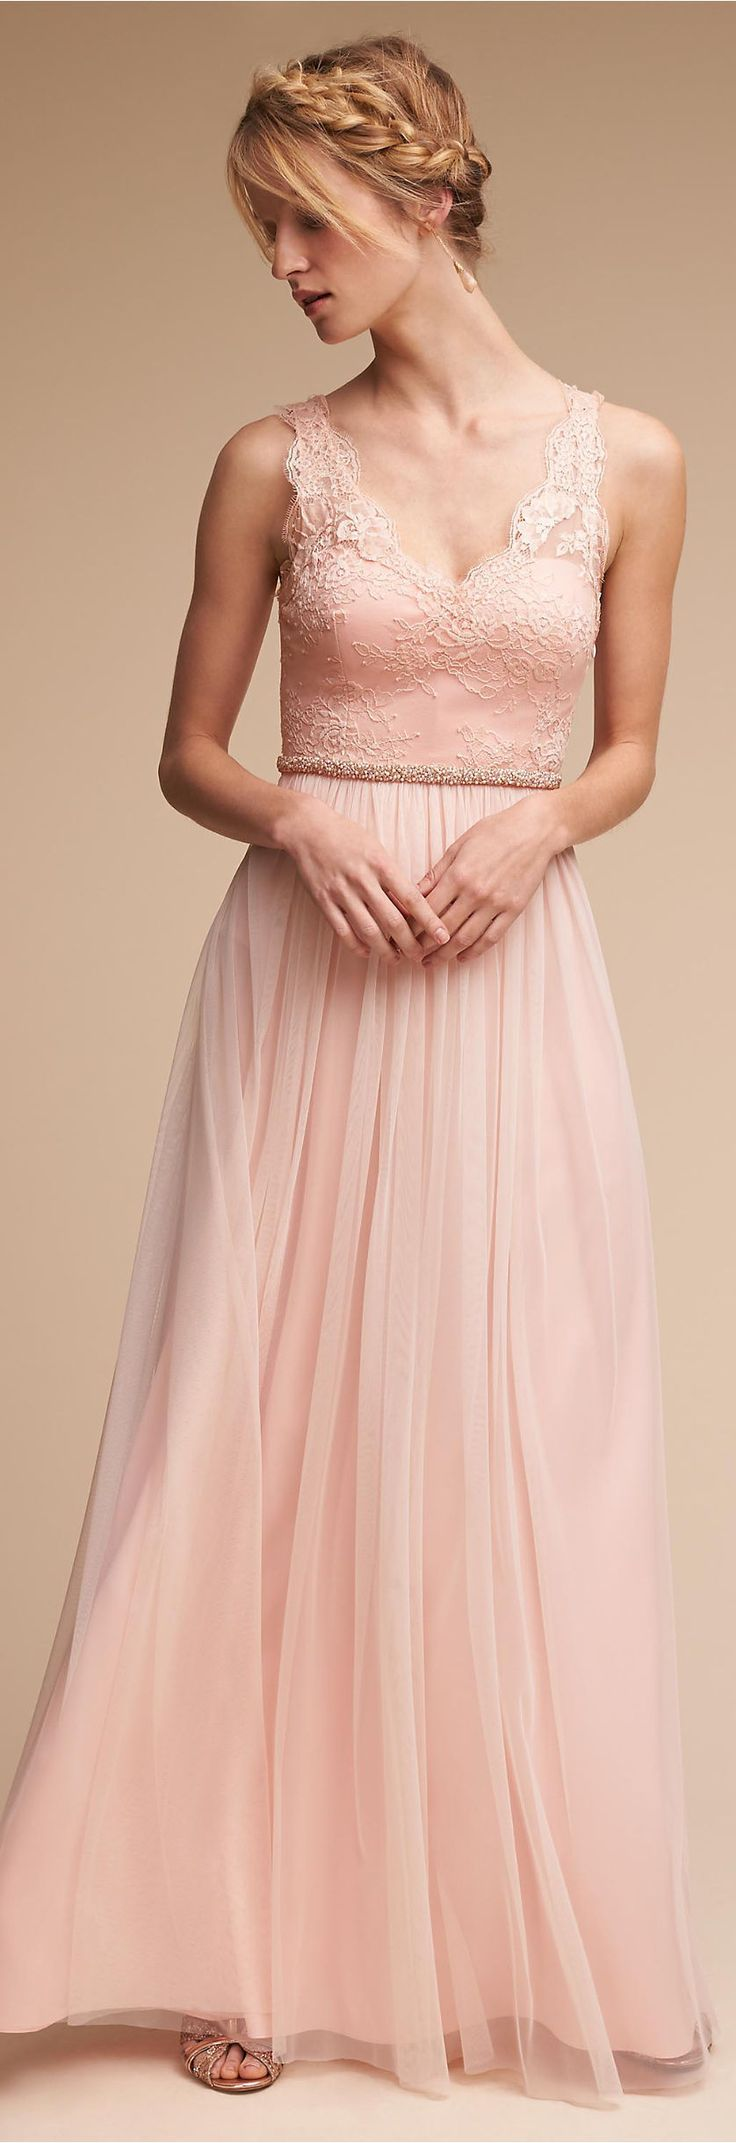 35 best bridesmaid dresses images on pinterest marriage blush blush lace bridesmaid dress bhldn ombrellifo Images